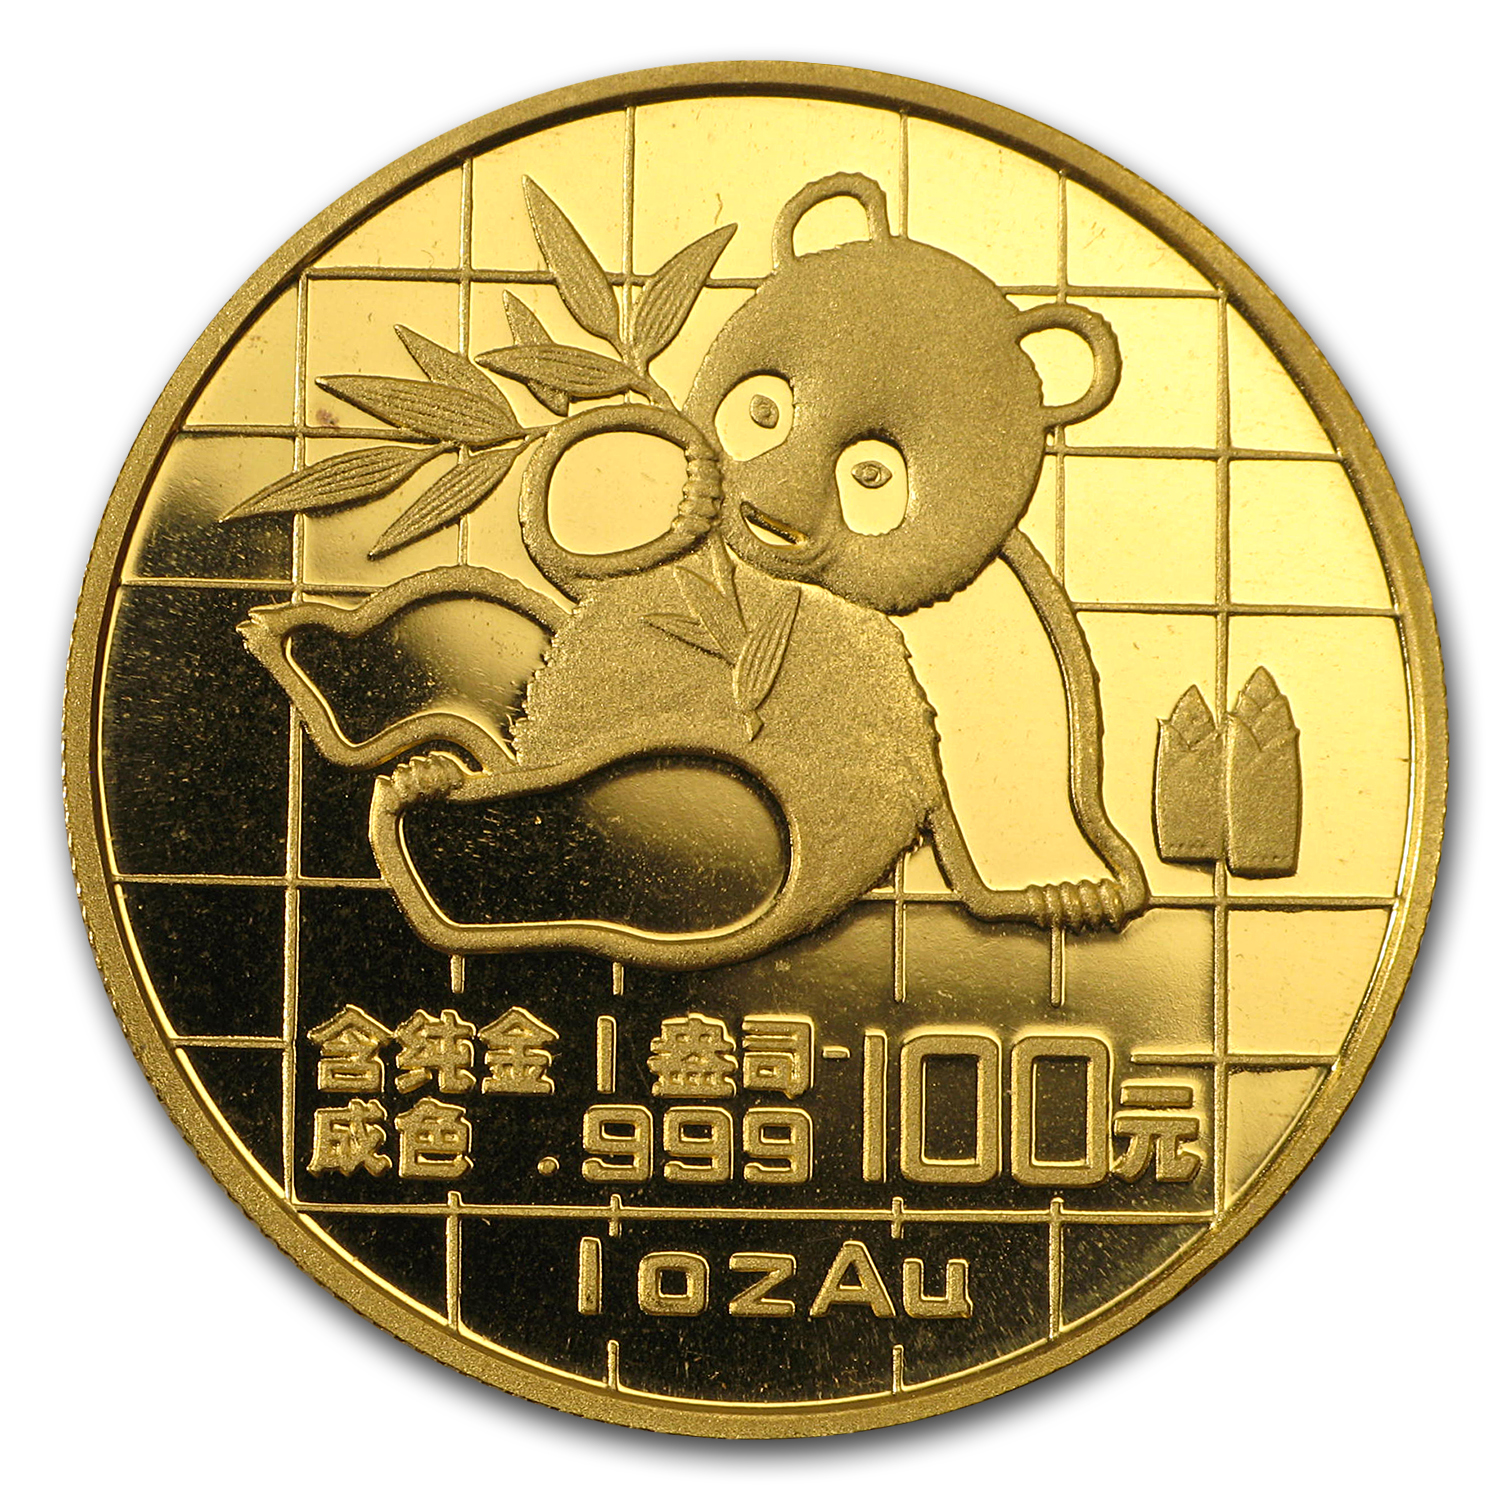 1989 China 1 oz Gold Panda BU (Not Sealed)